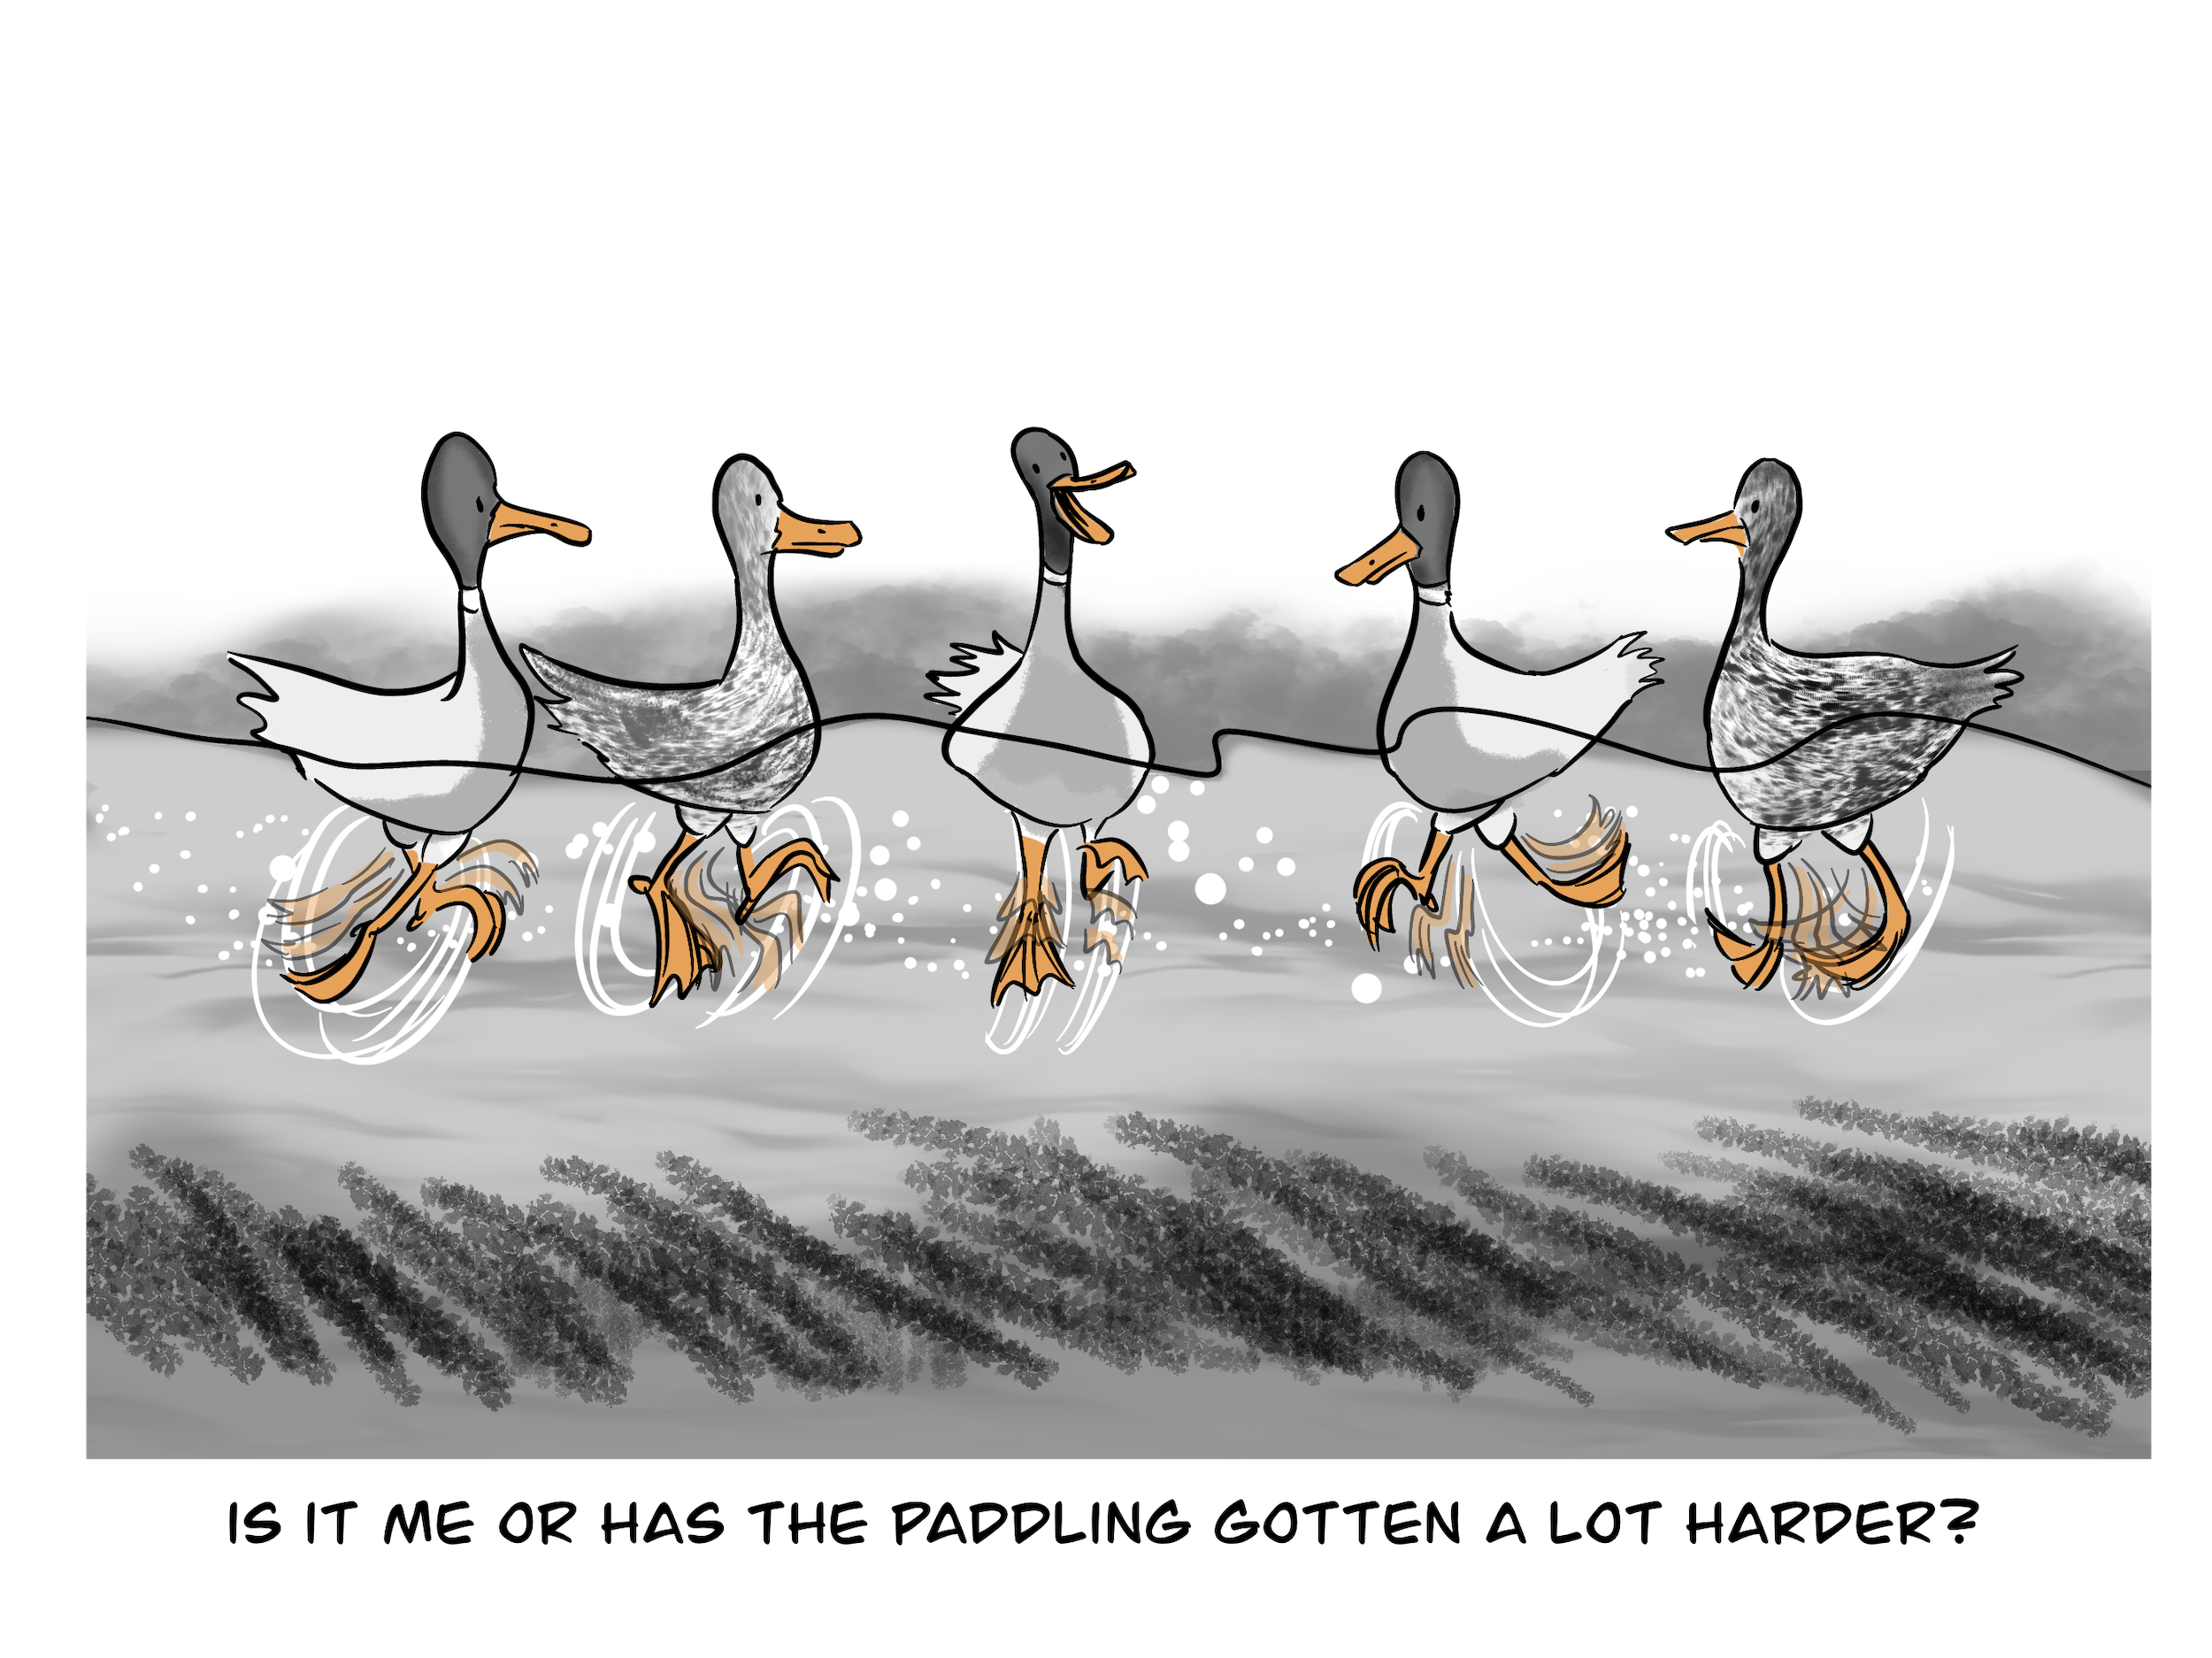 """5 ducks: """"Is it me or has the paddling gotten a lot harder?"""""""